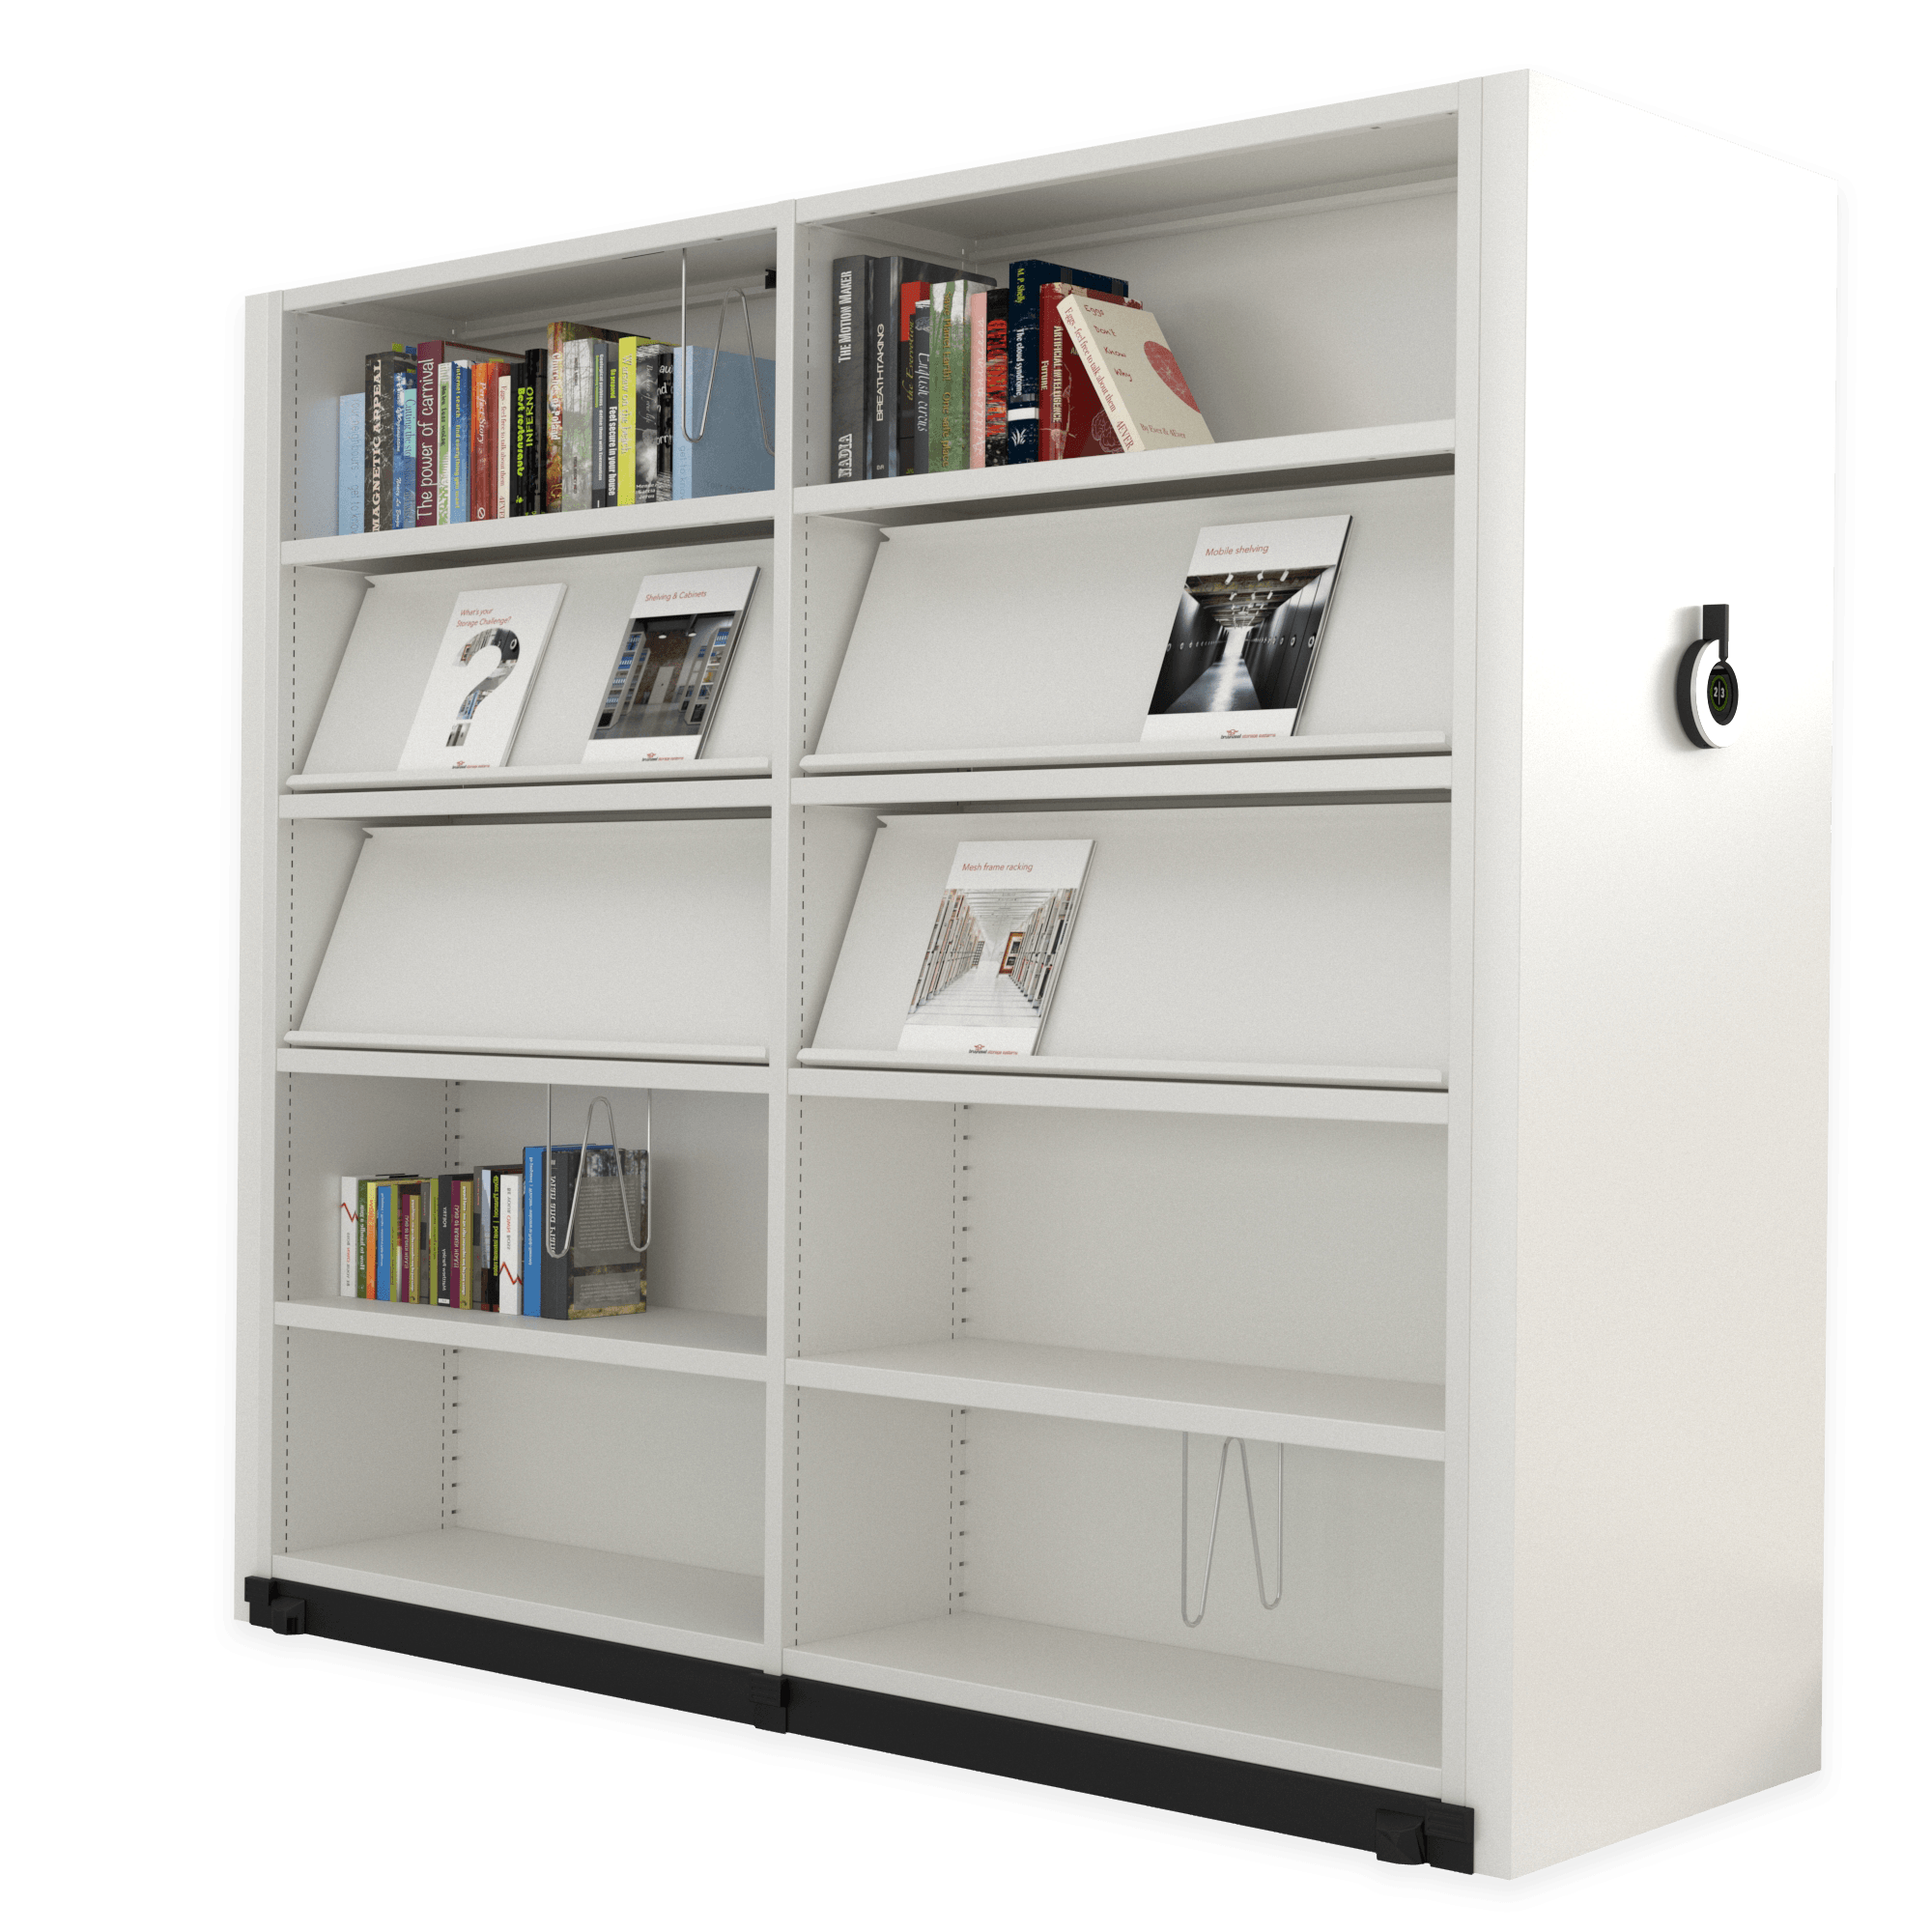 Compactus Dynamic II amenagement bibliotheque